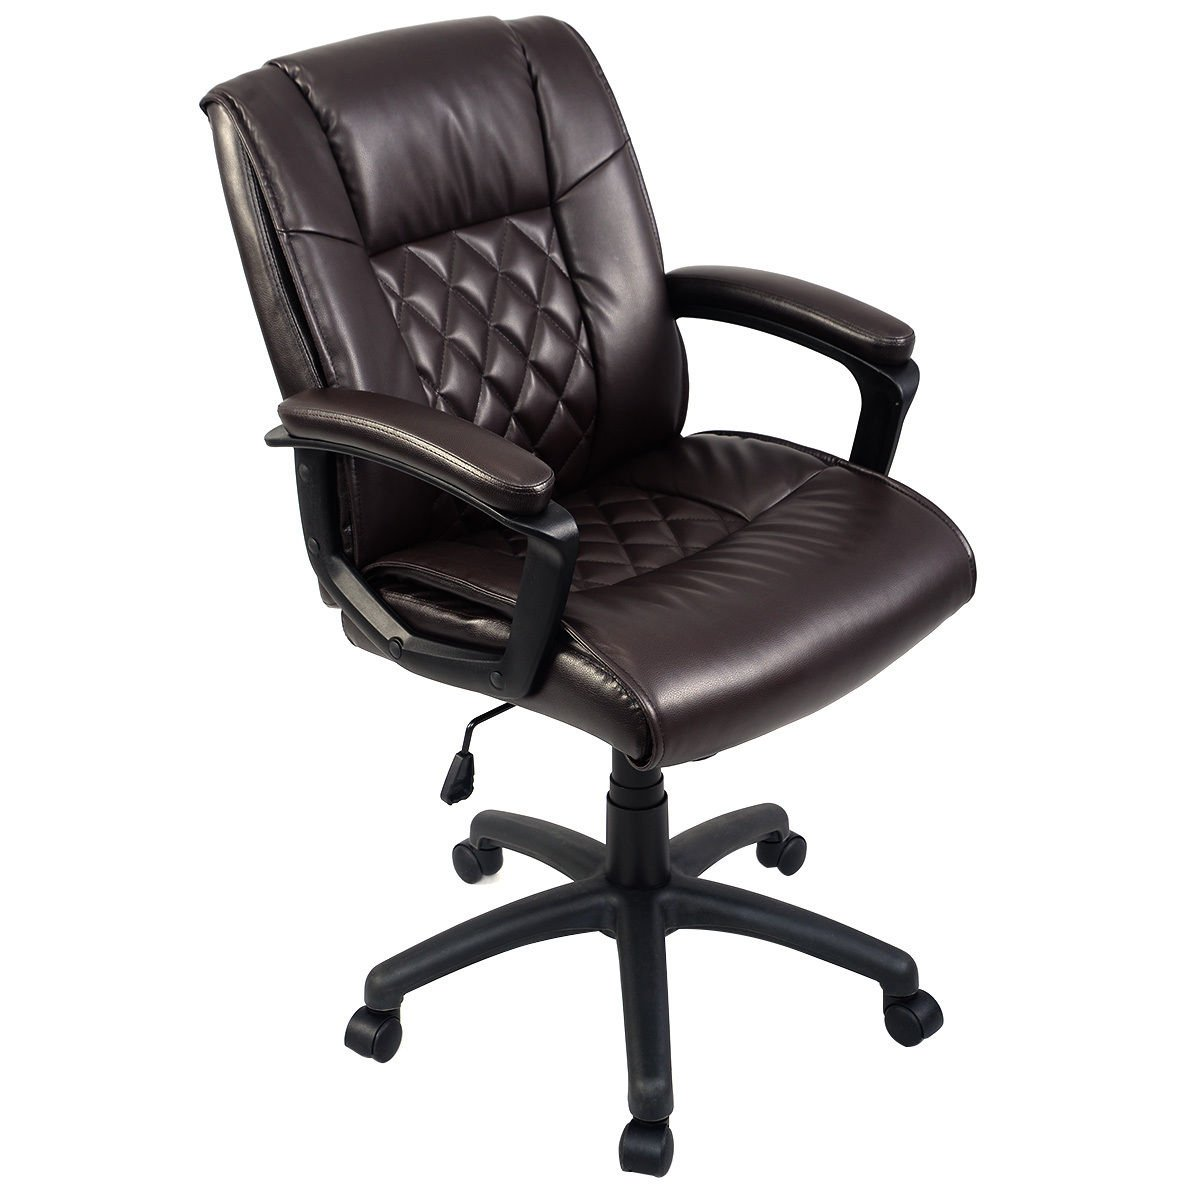 Giantex Ergonomic Task Chair PU Mid-Back Leather Executive Computer Desk Task Office Chair (Brown 26''X 30''X37.6''-42'')